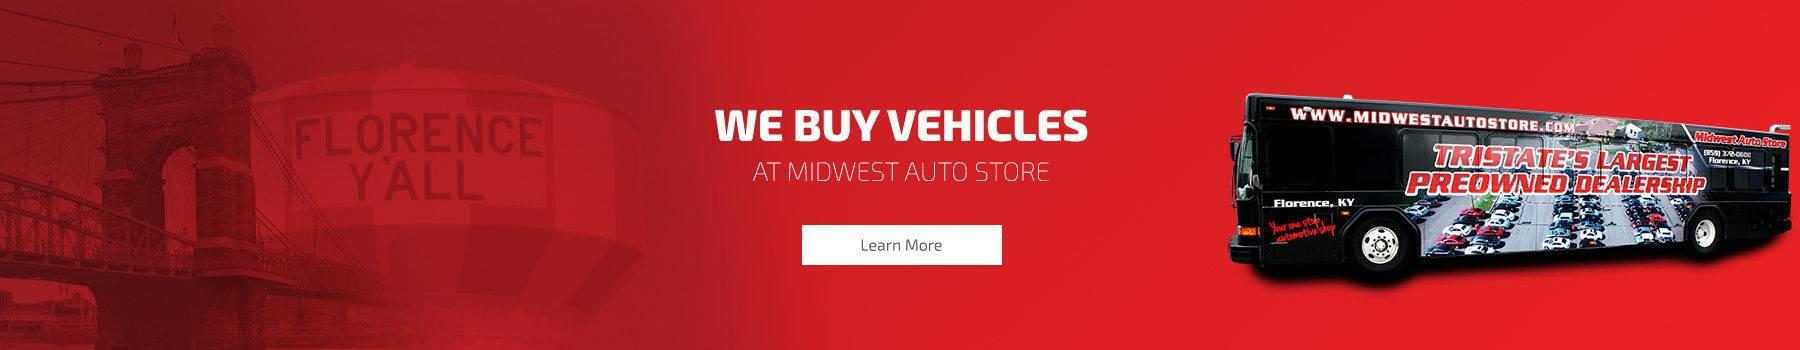 we-buy-vehicles-3